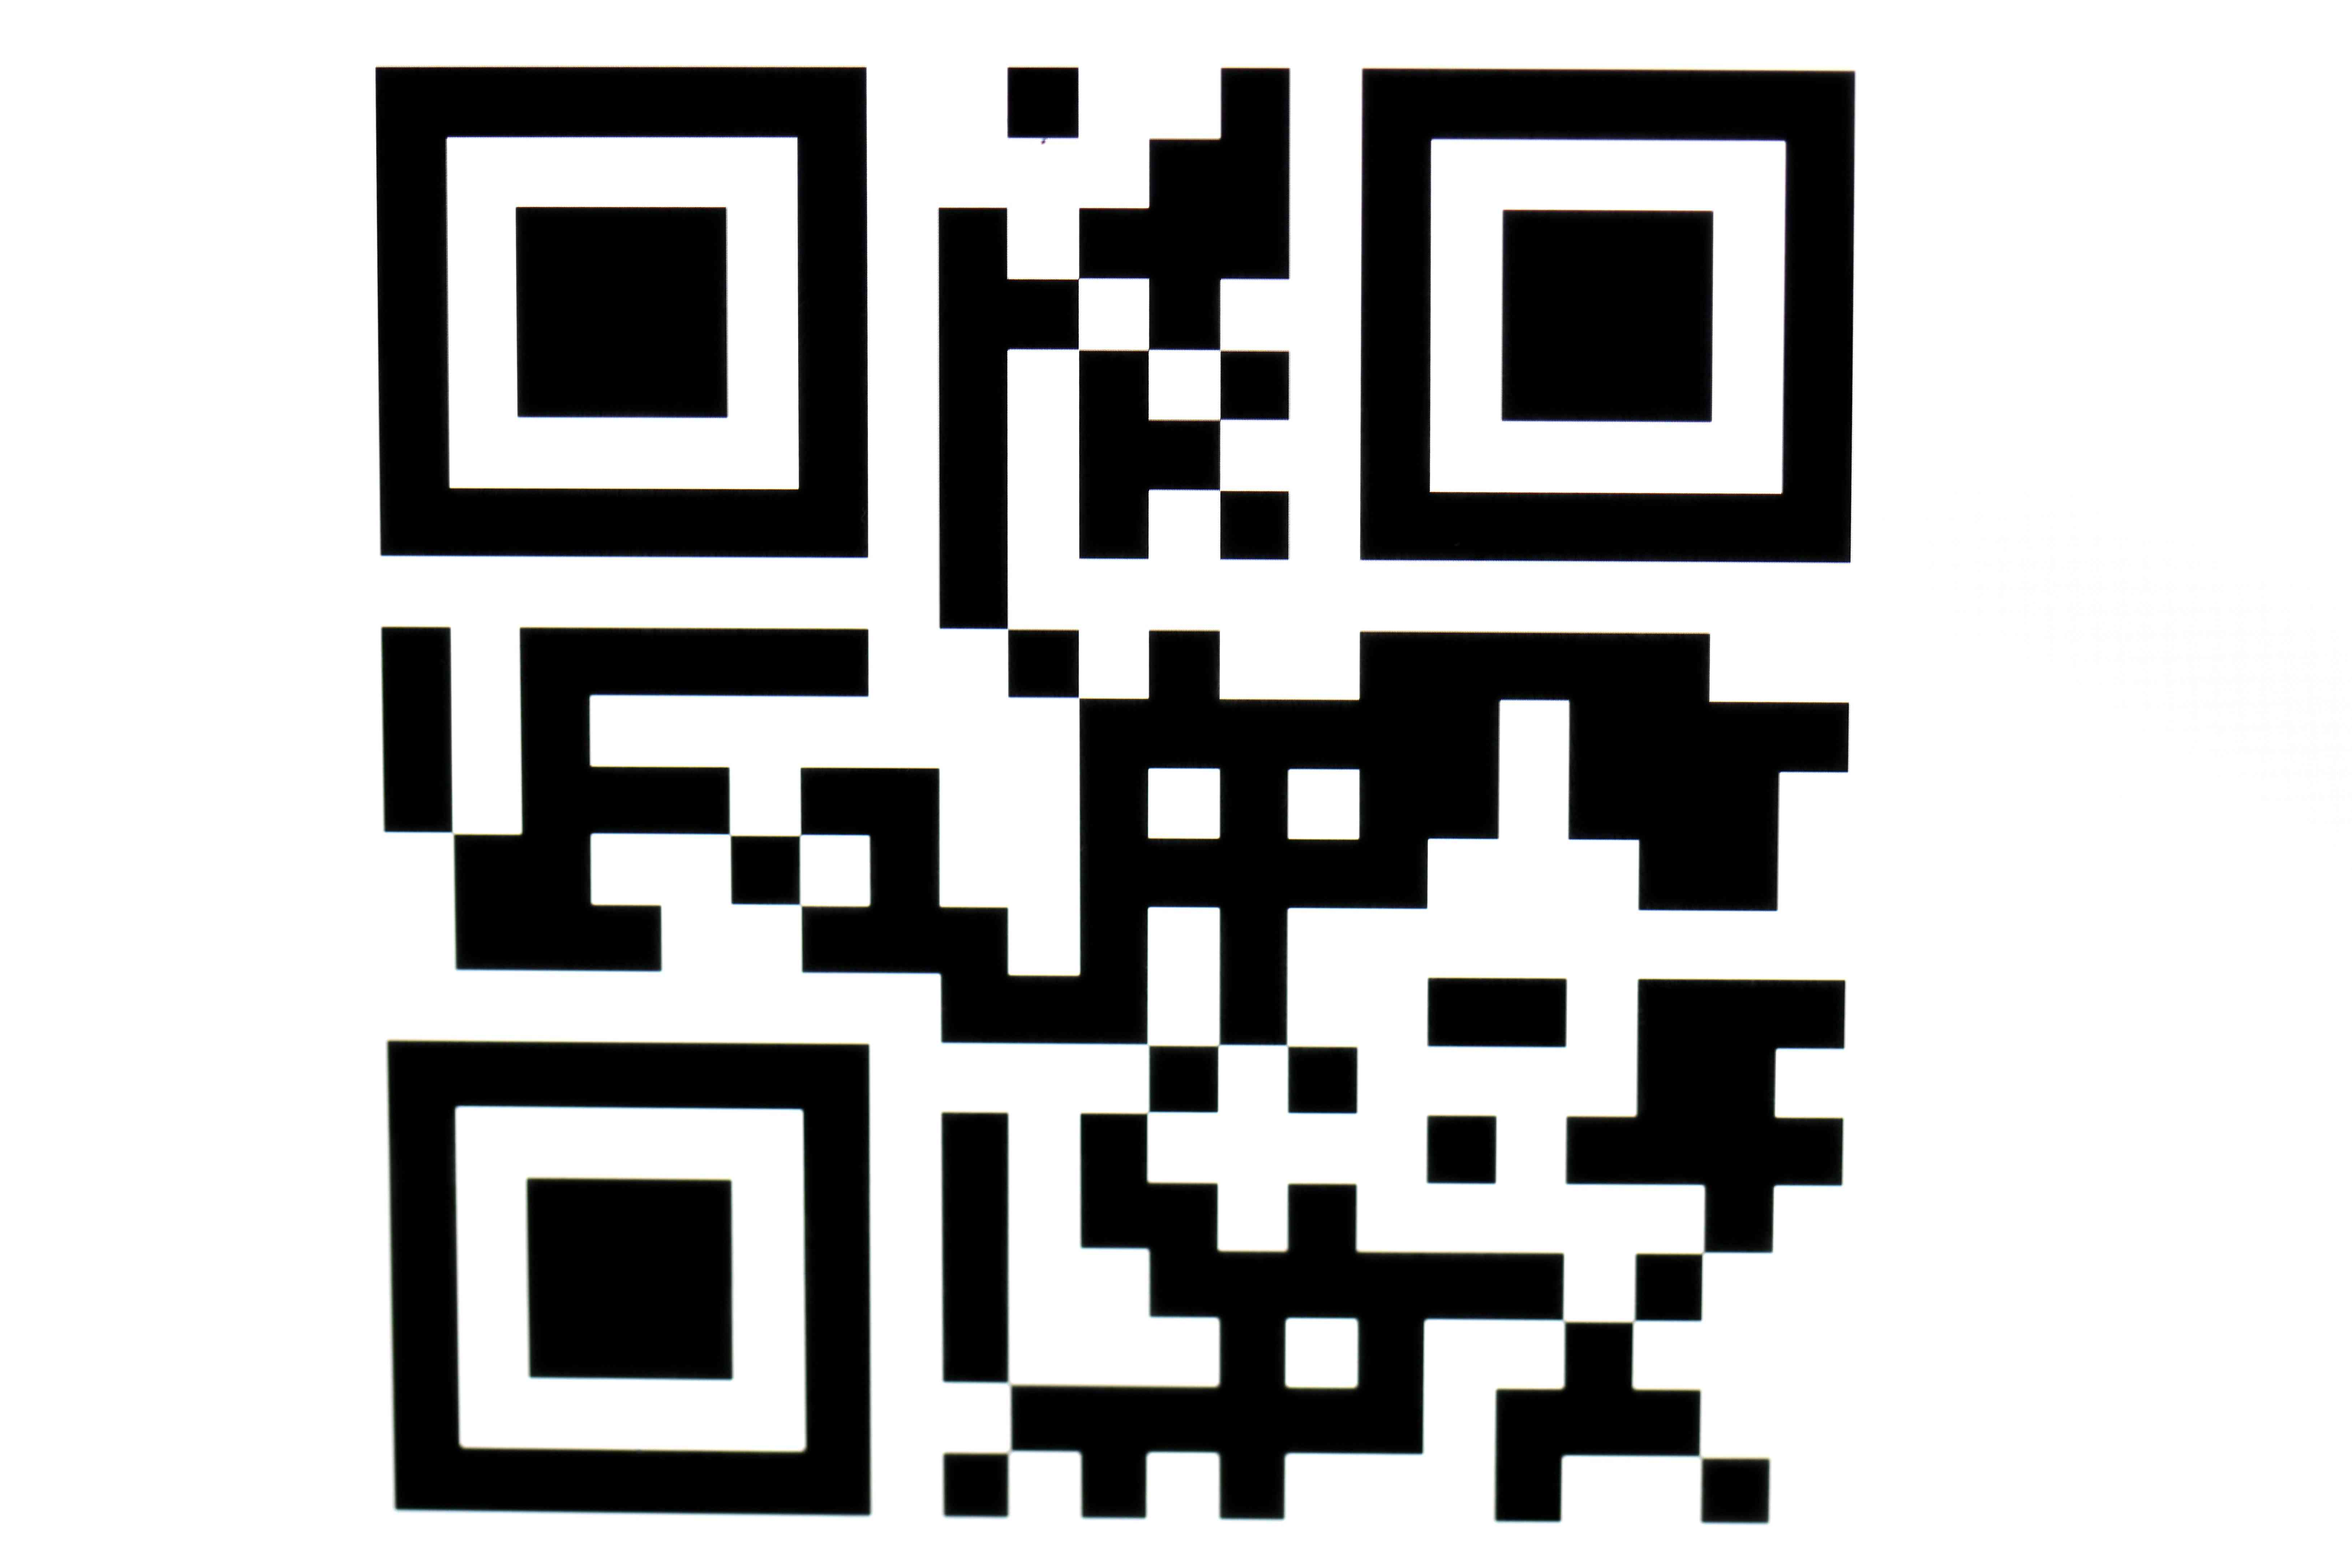 QR barcode for data labeling